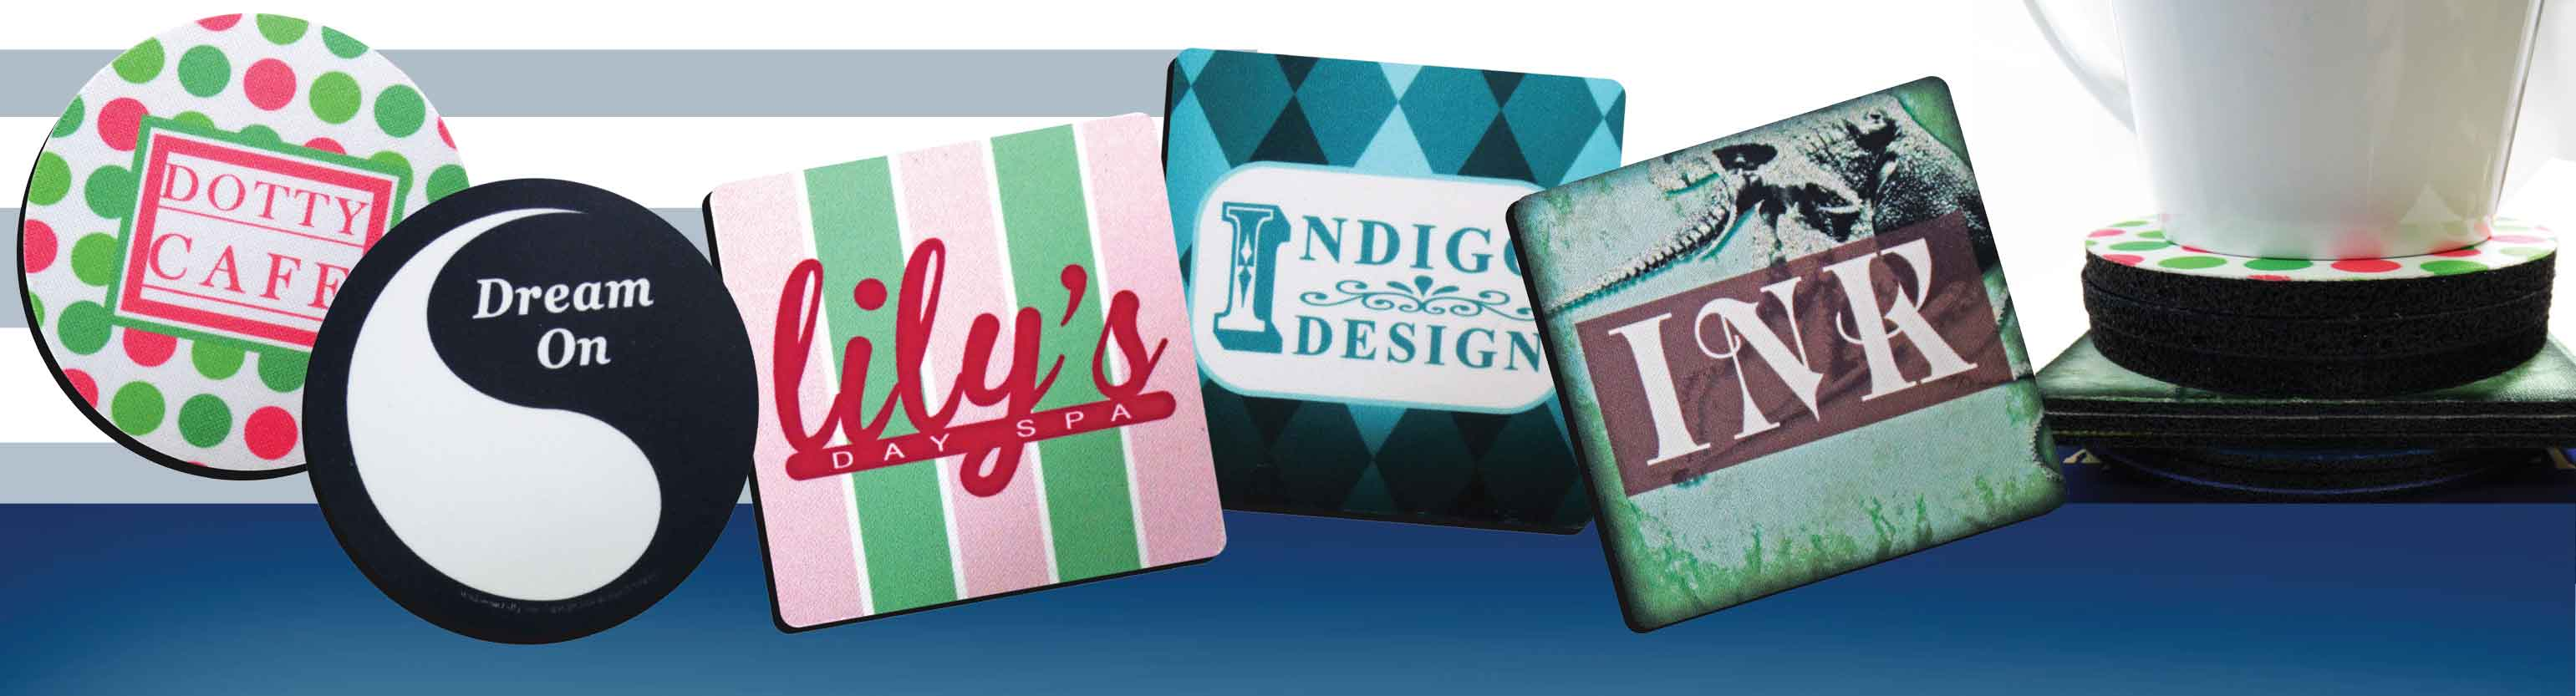 Drink coasters custom printed full color category header